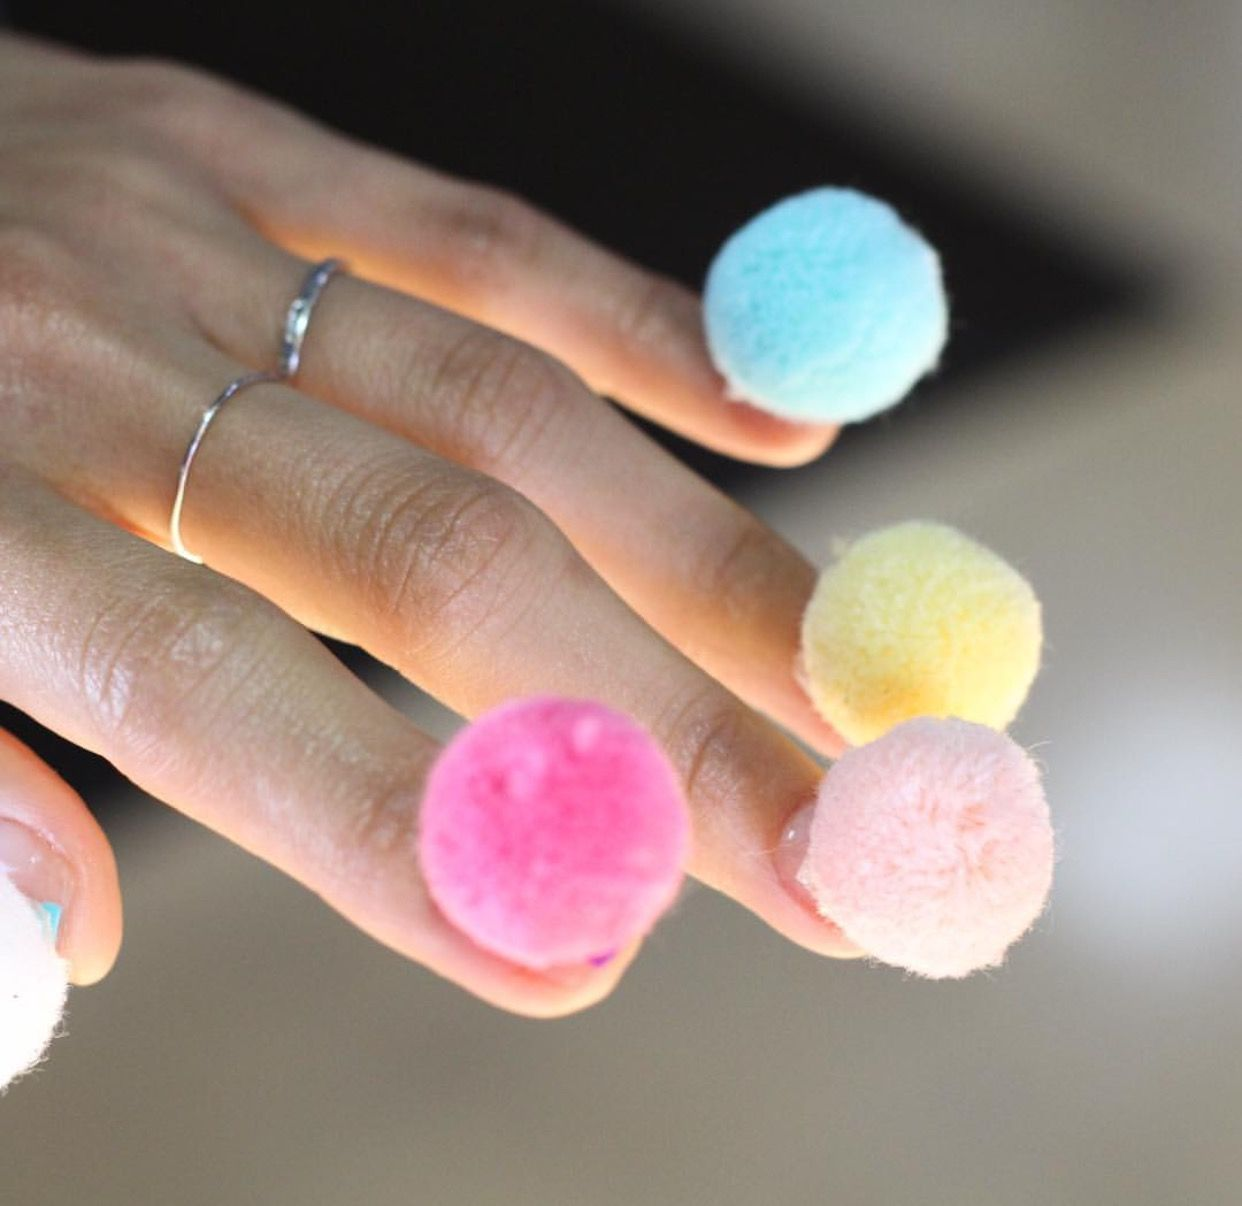 Pompom unistella nails, another weird one | Nail Trends | Pinterest ...